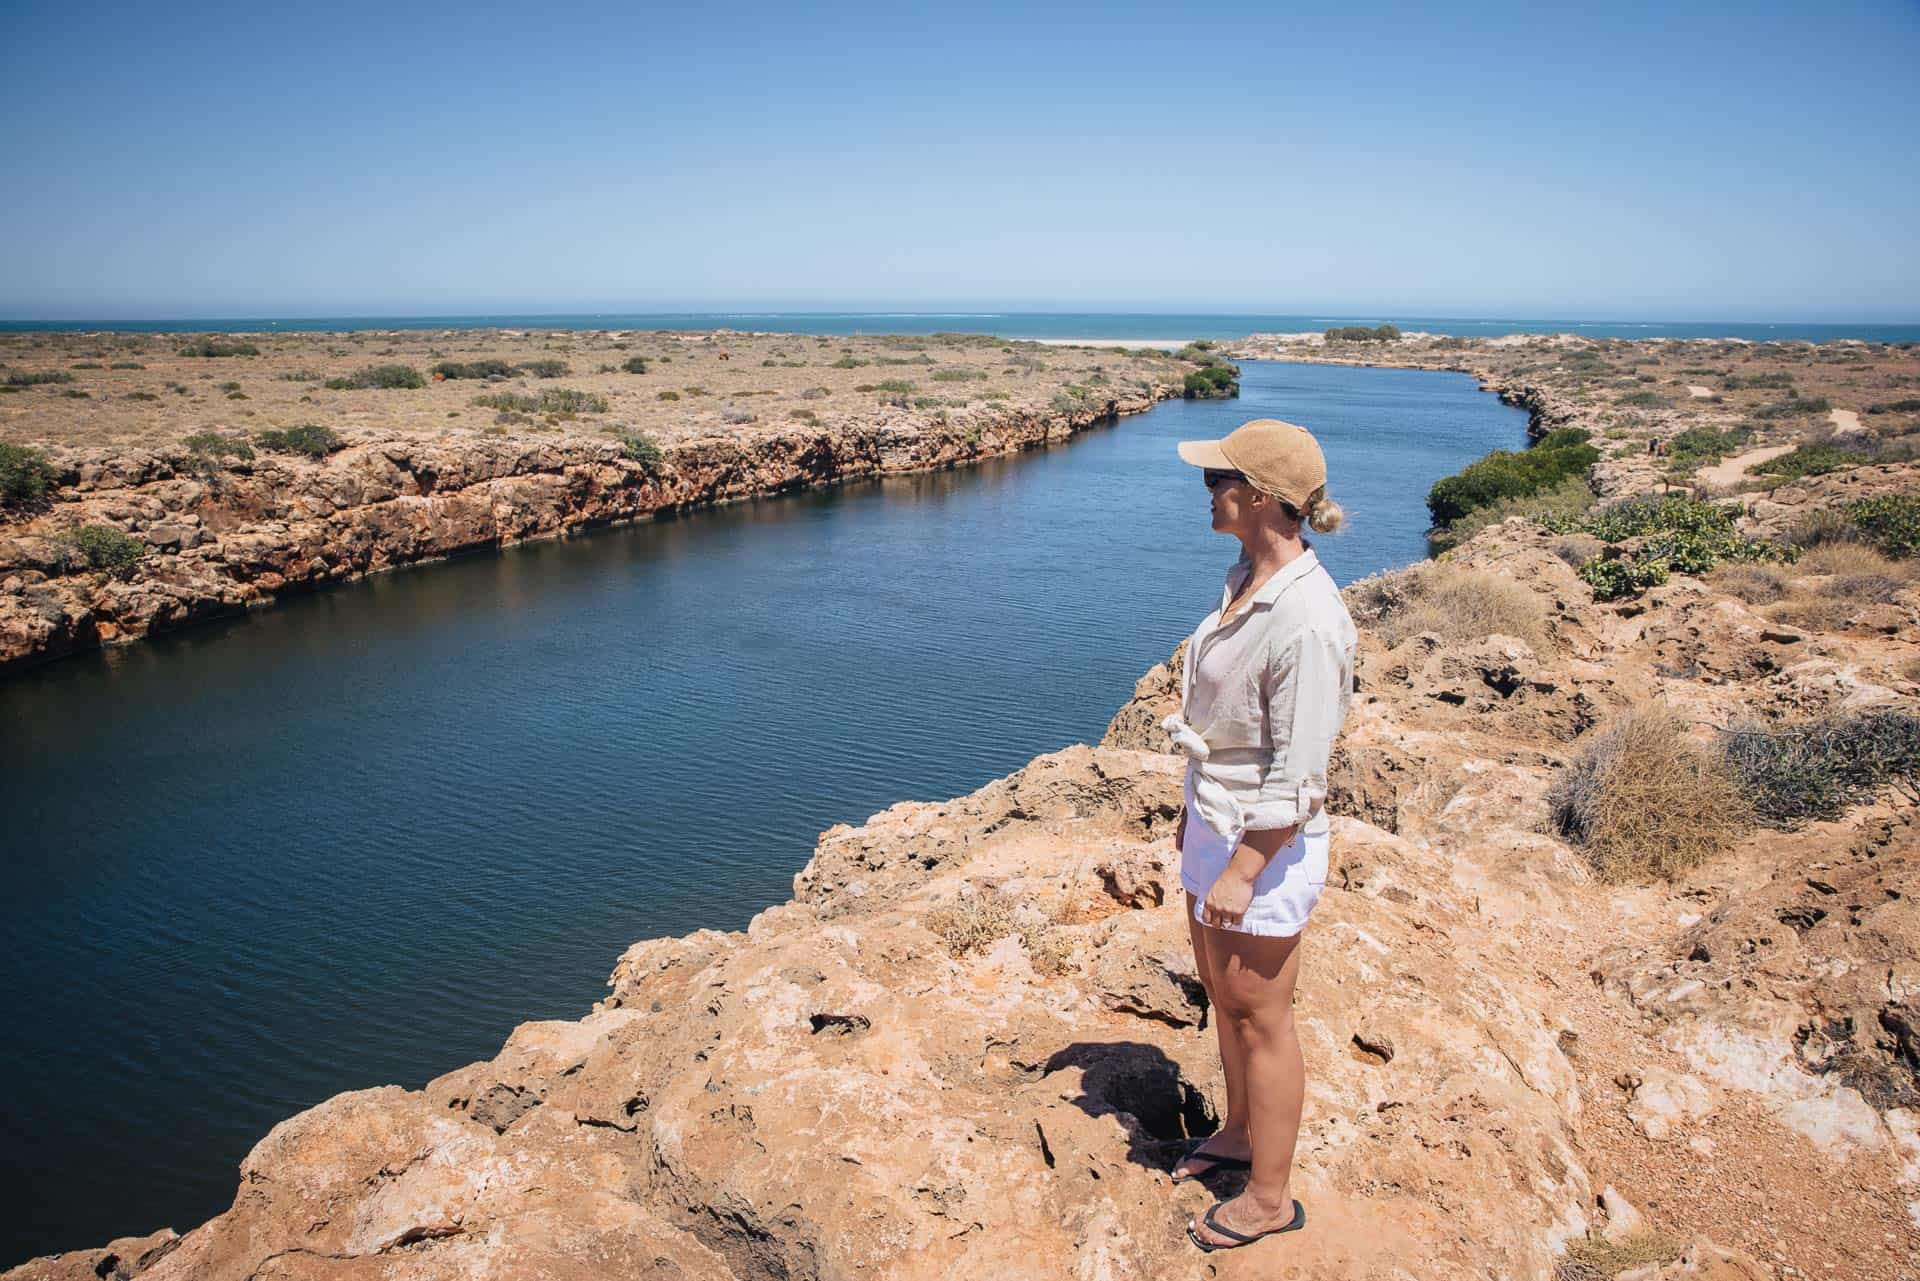 things to do in exmouth, exmouth western australia, what to do in exmouth, exmouth things to do